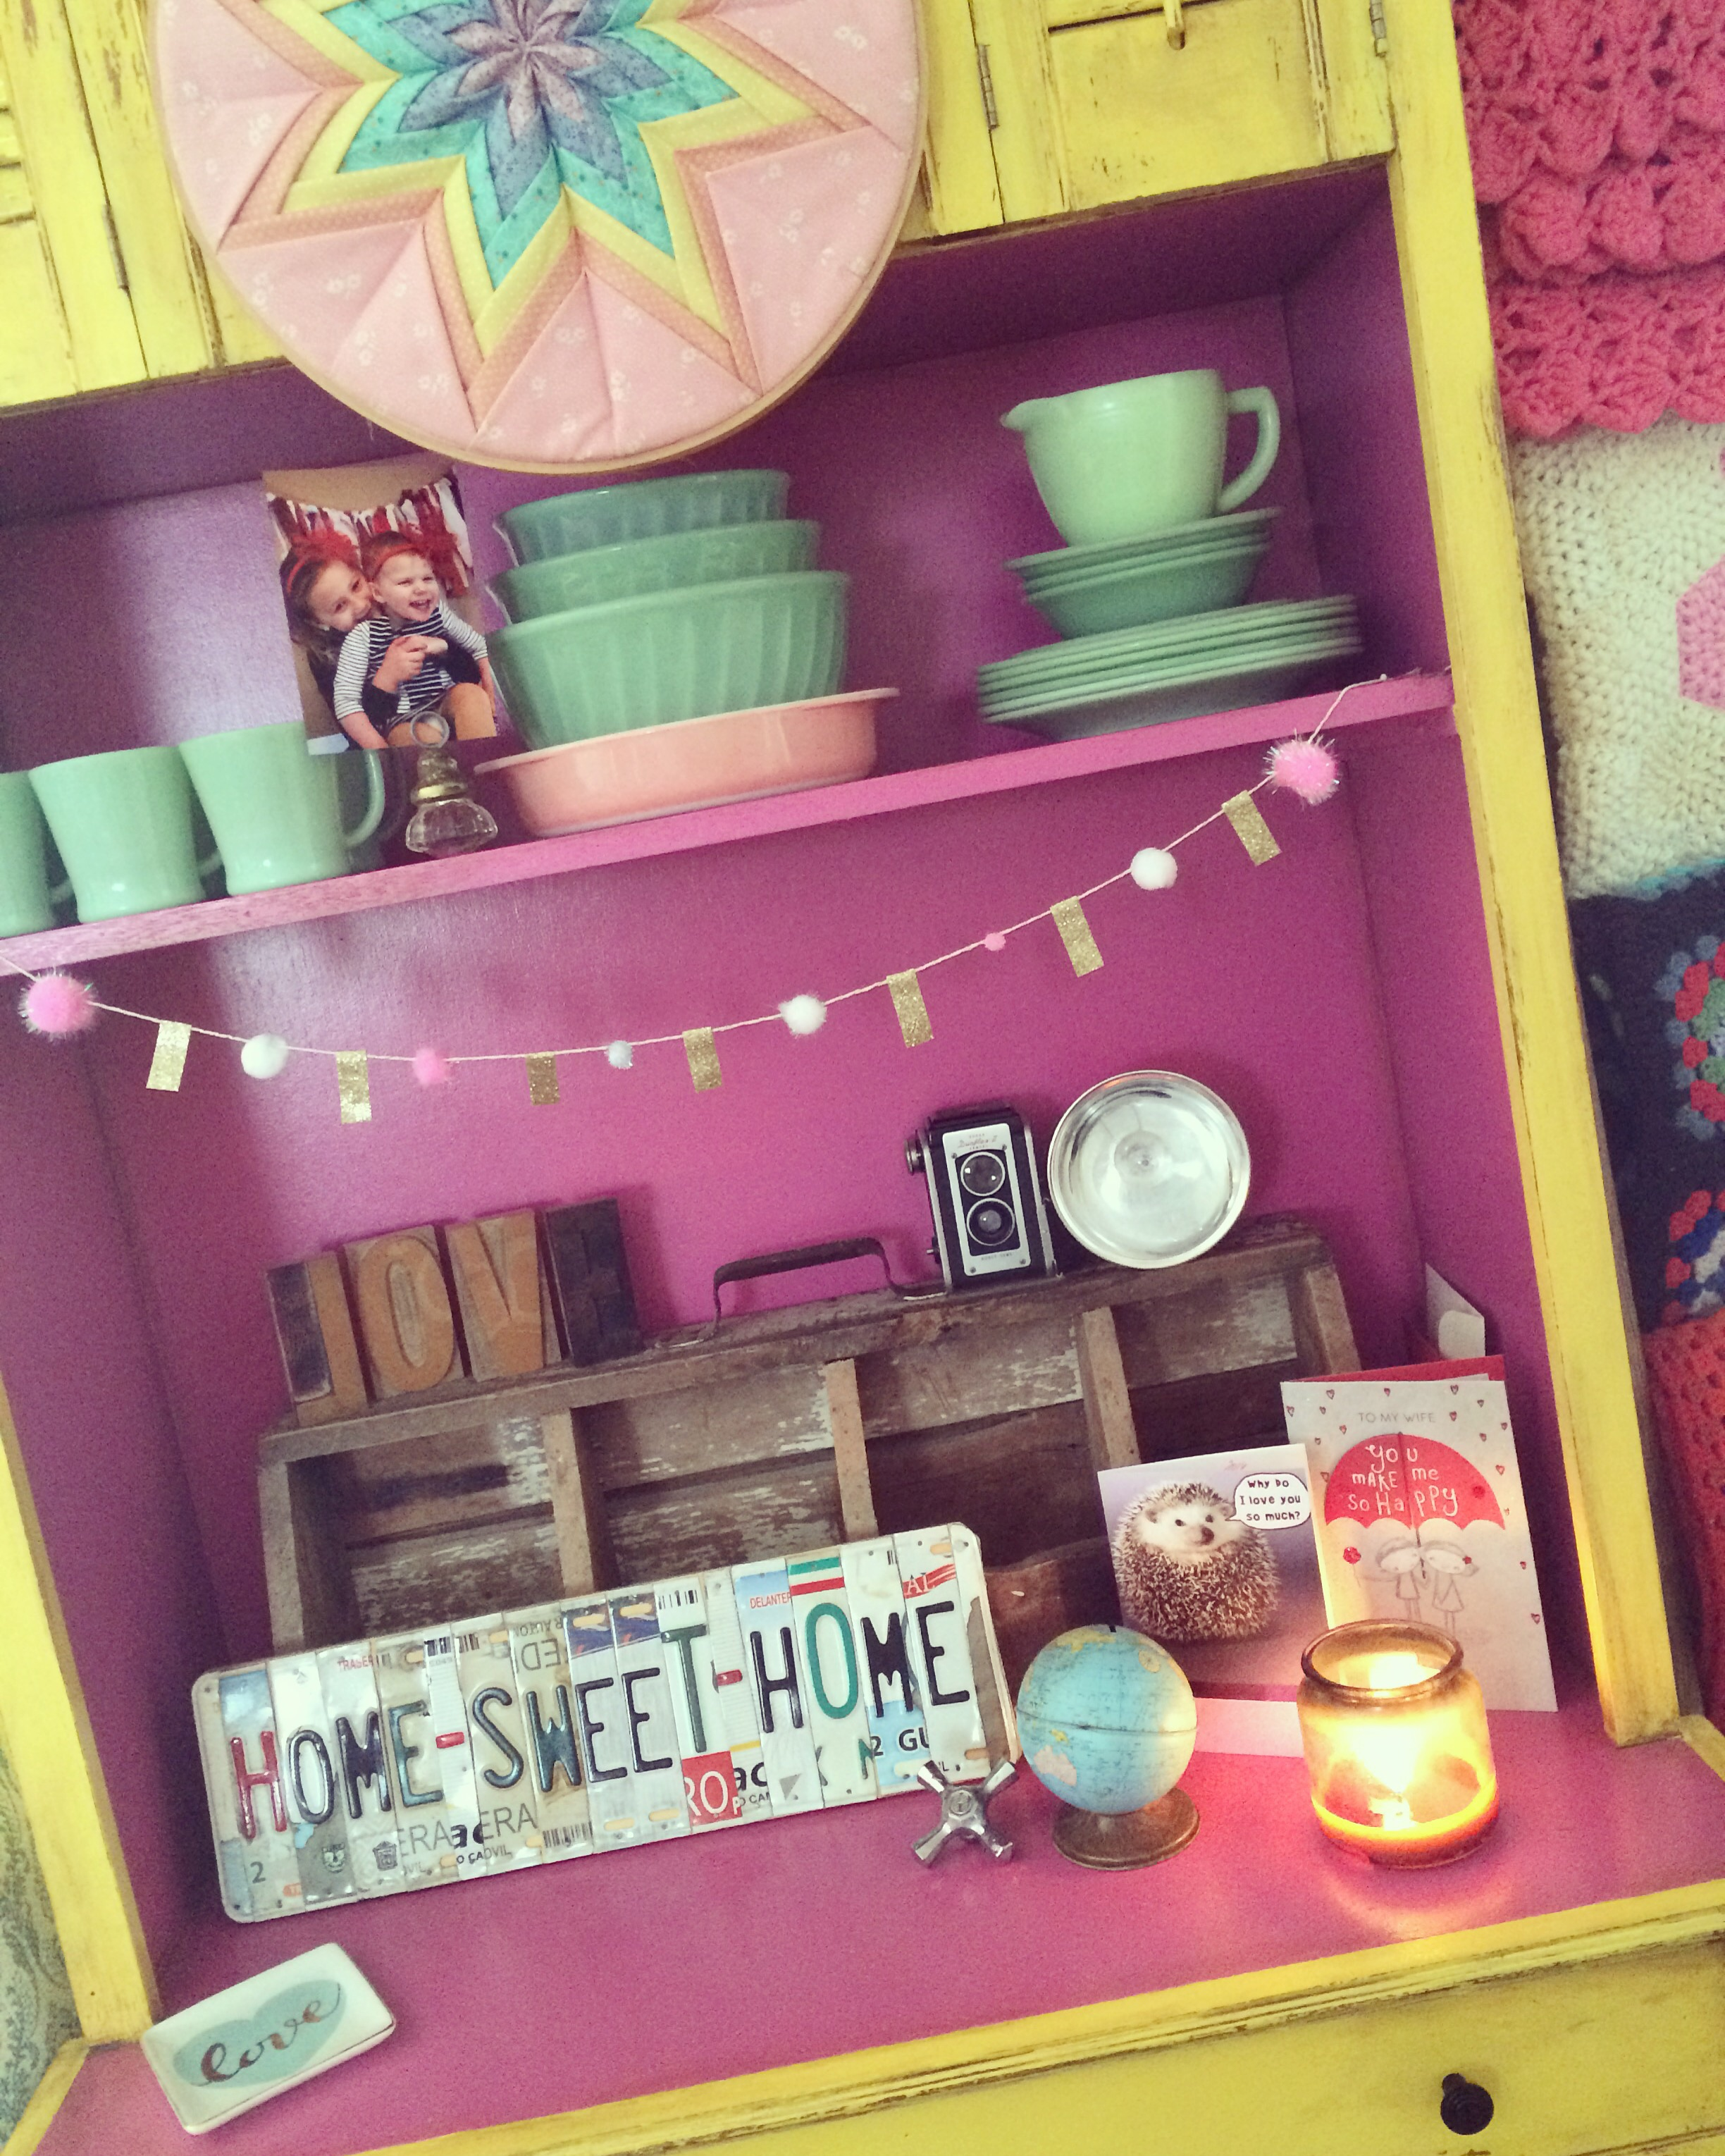 """Pink and yellow hutch decorated with vintage dishes, a license plate sign that says """"home sweet home"""", and other vintage pieces. 